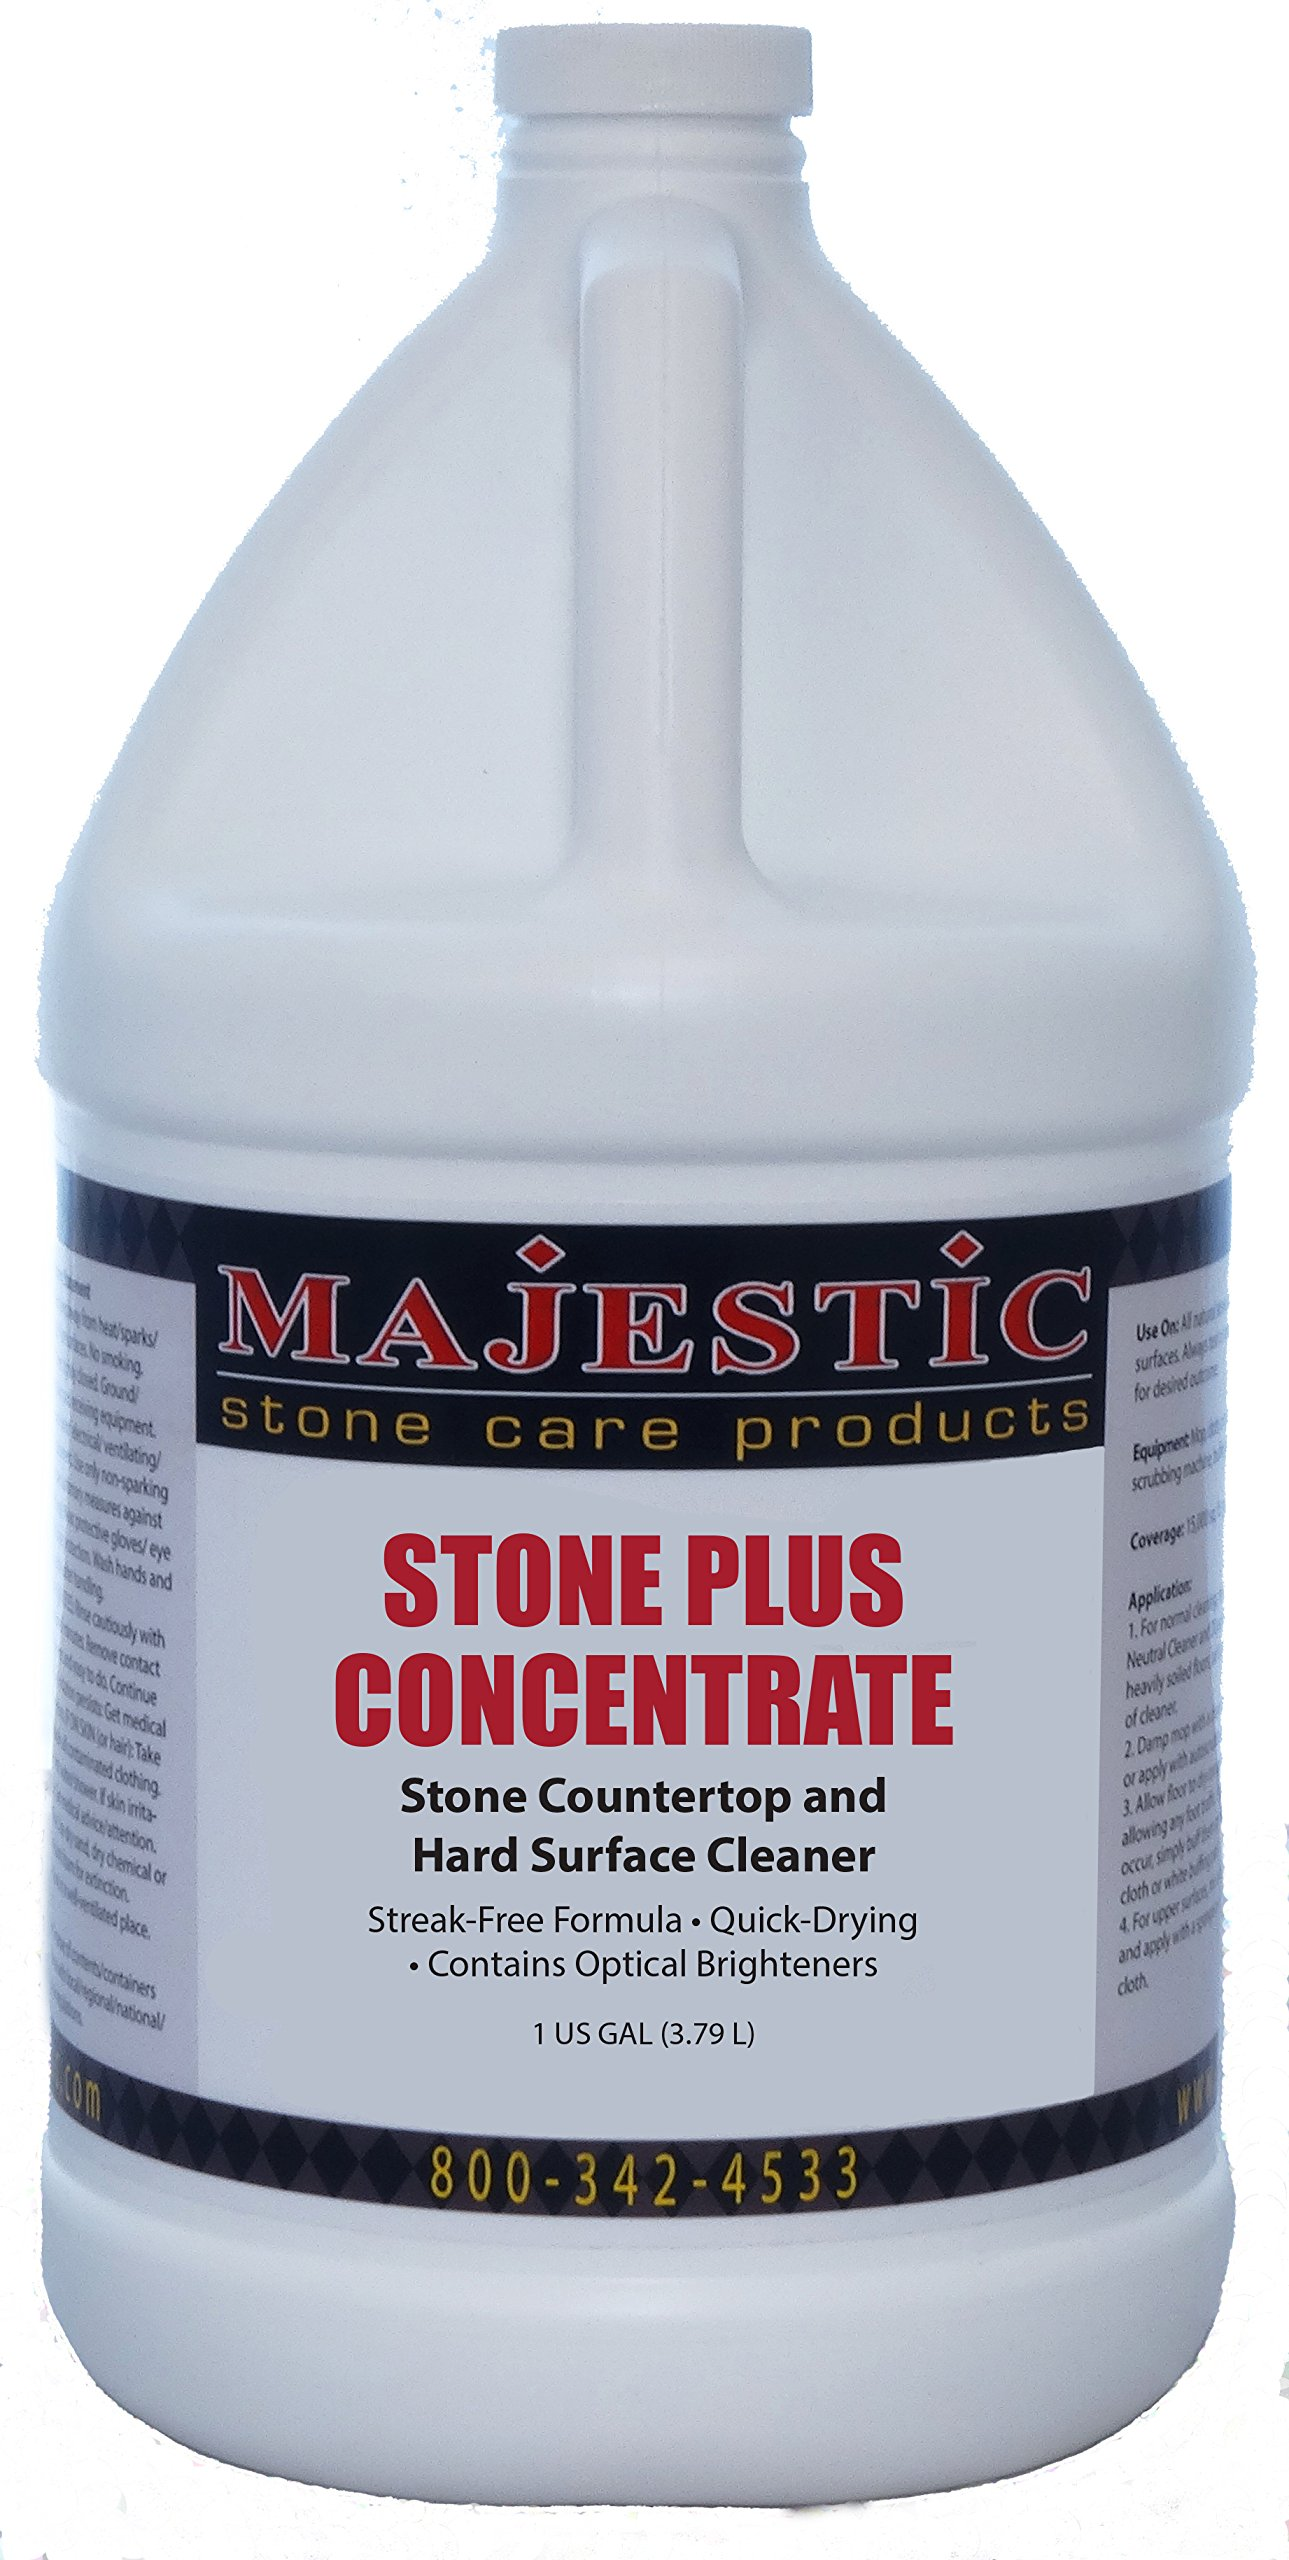 Stone Plus Concentrate Gal. by Majestic Stone Care Products